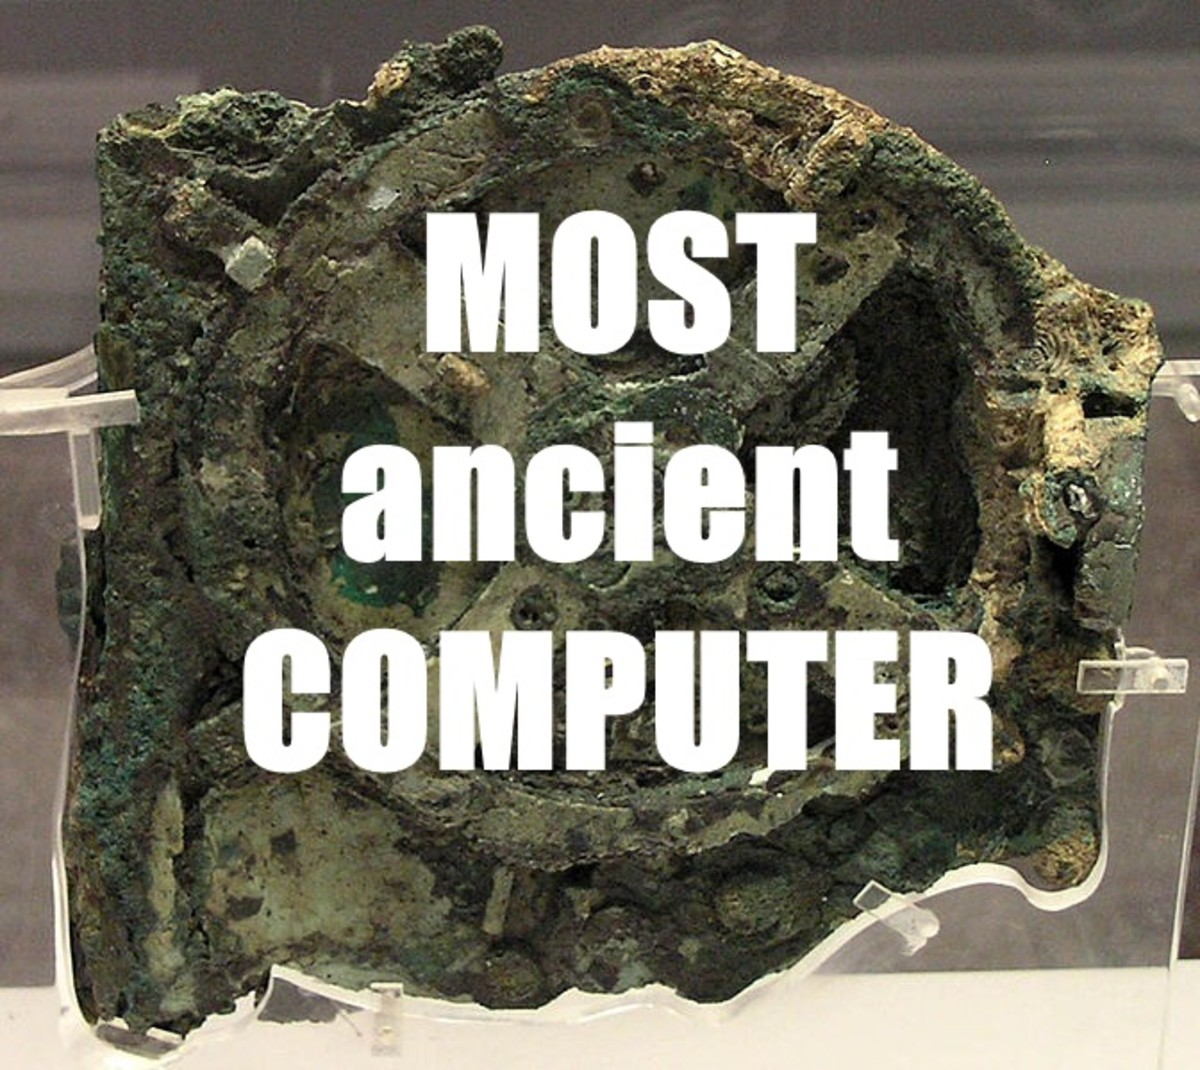 The 2,000 Year Old Computer